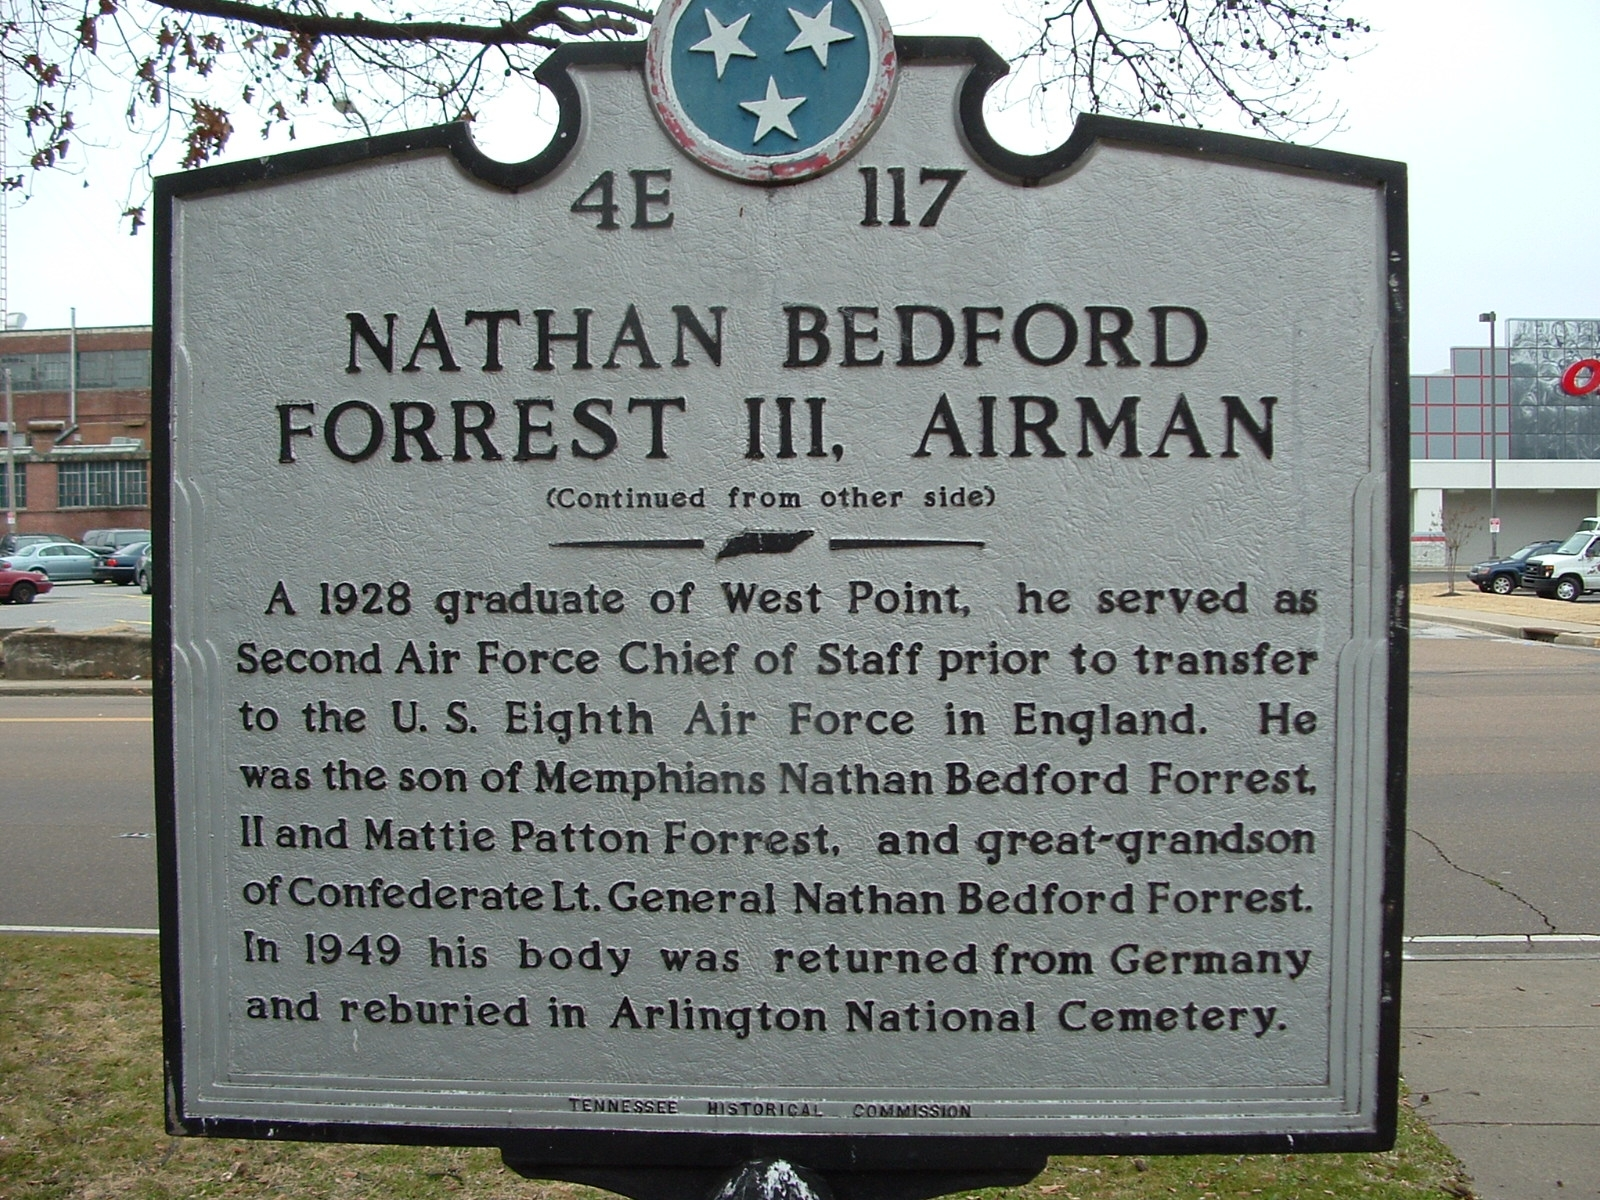 Nathan Bedford Forrest III, Airman Marker